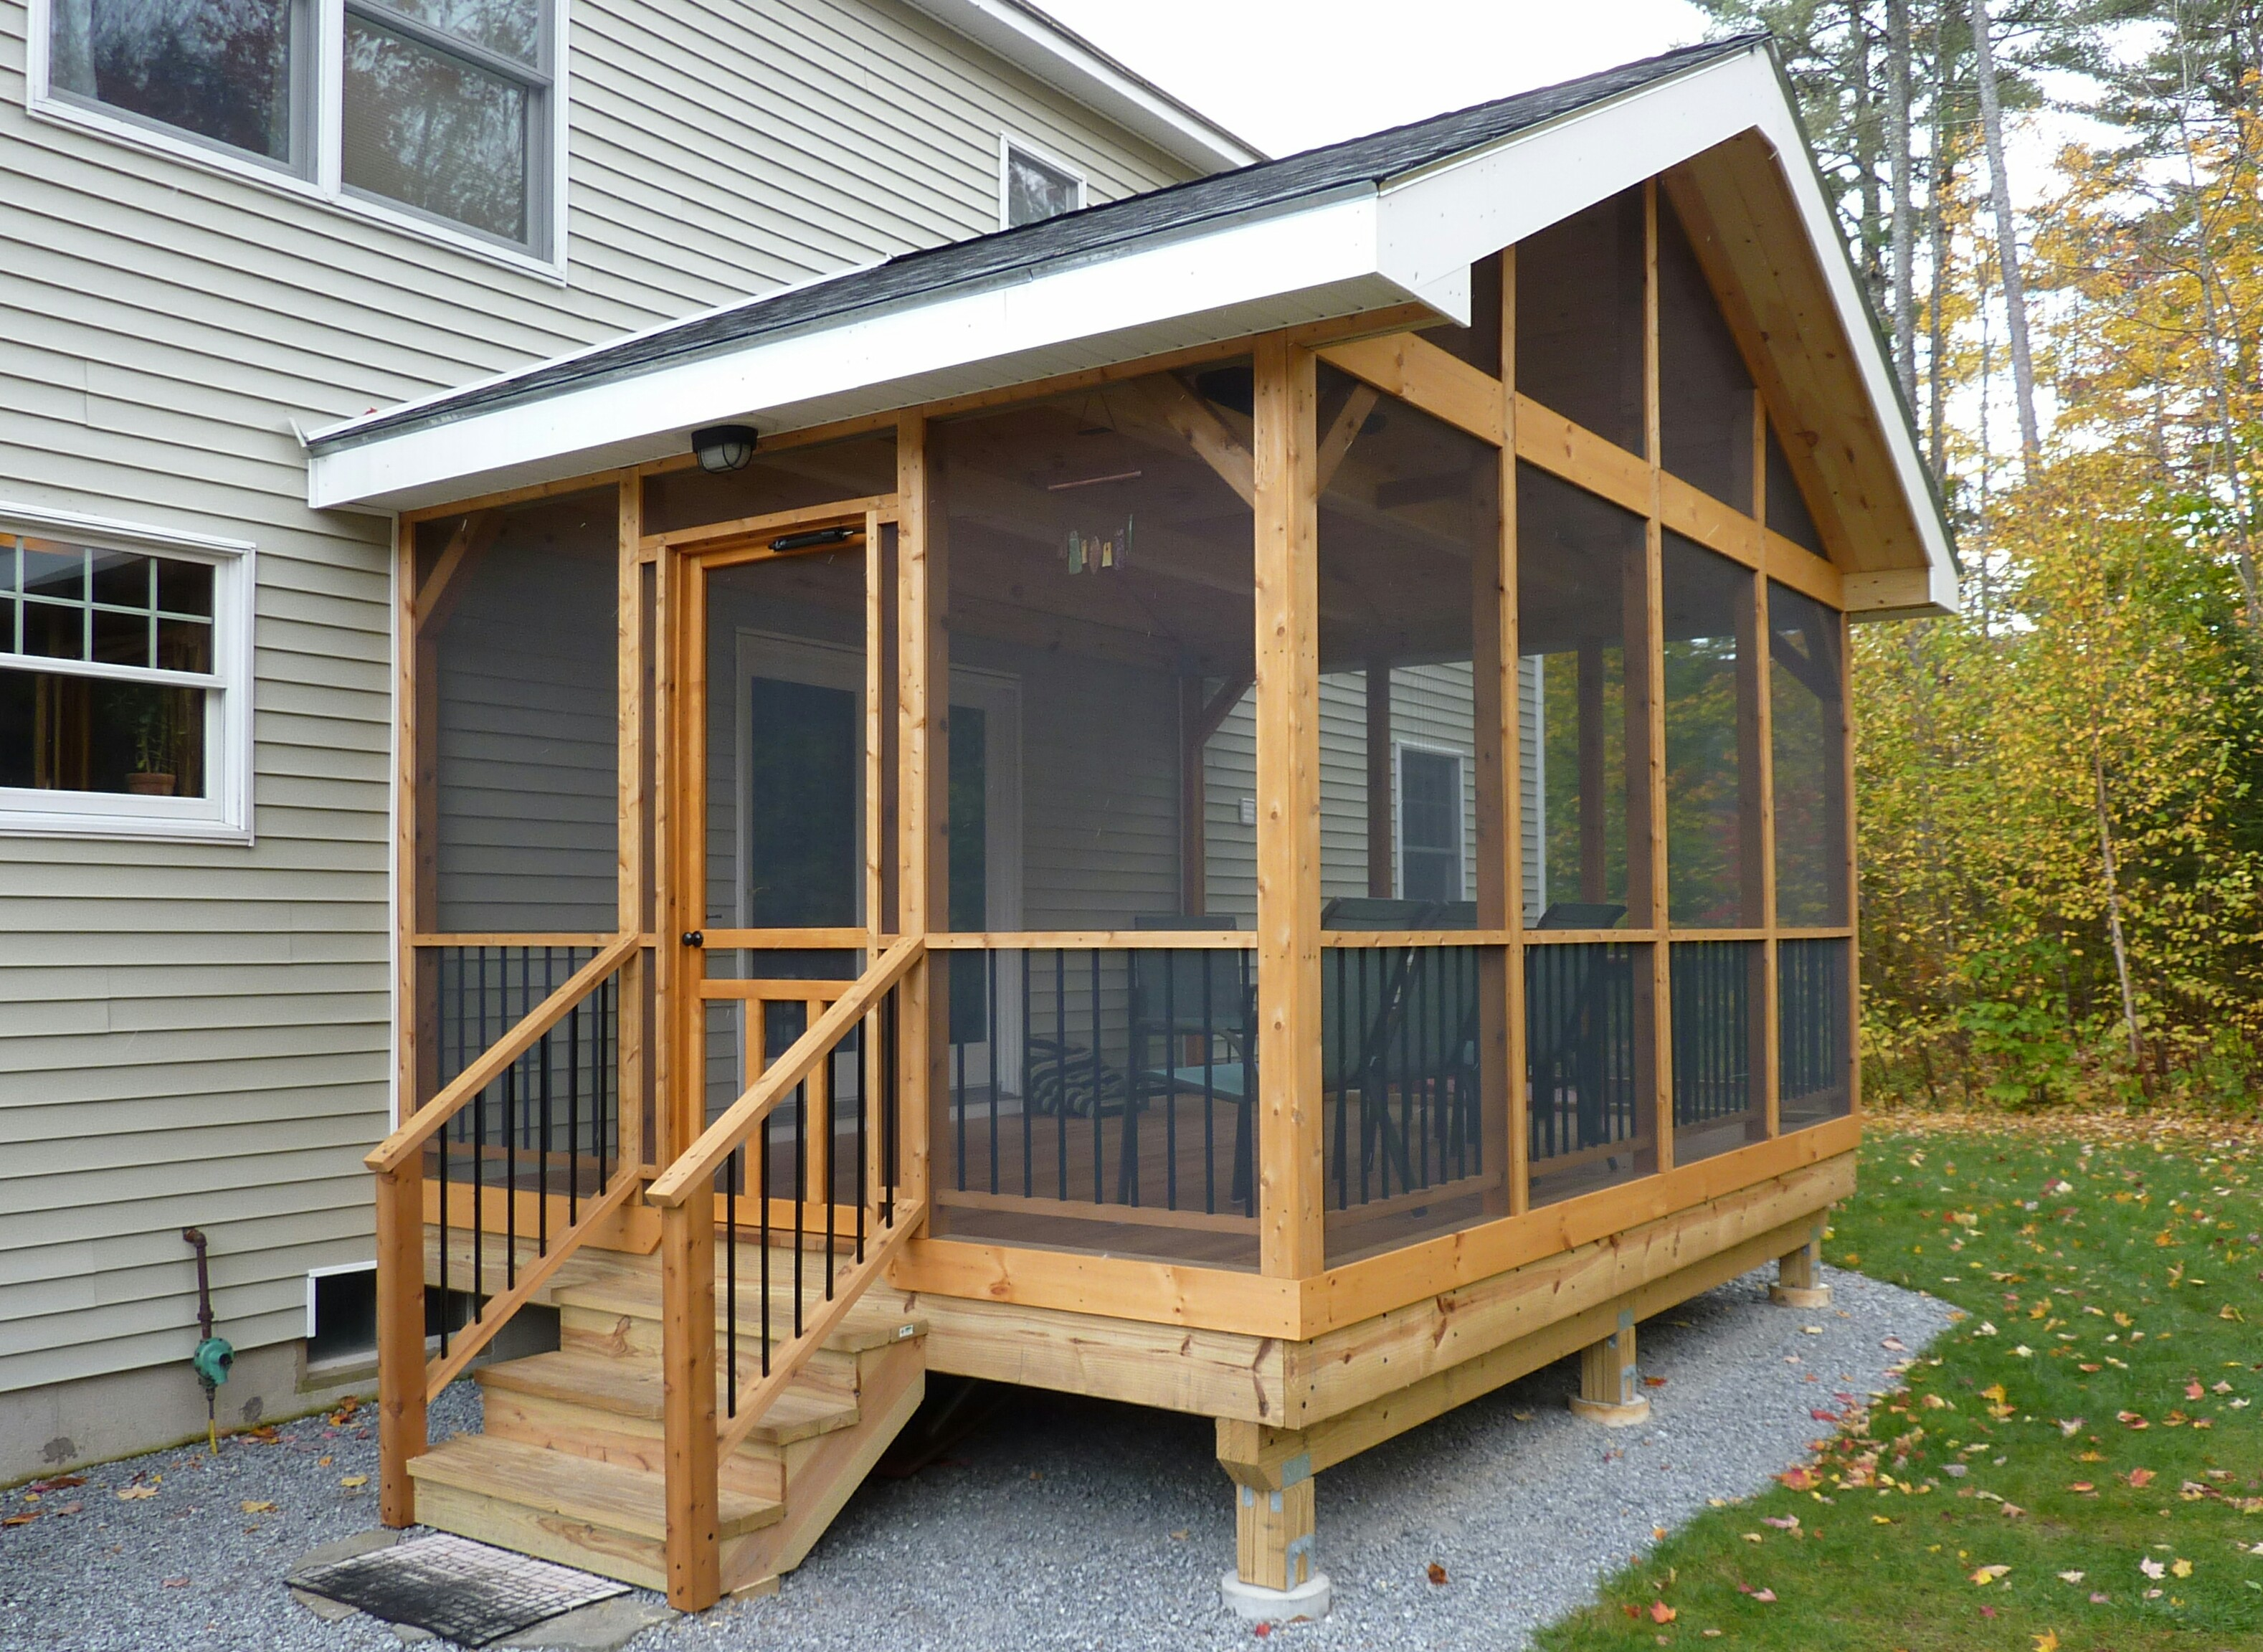 15 DIY Screened In Porch-Learn how to screen in a porch ... Simple Enclosed Decks For Mobile Homes on side decks for mobile homes, enclosed mobile home porch steps, prefabricated decks for mobile homes, small decks for mobile homes, portable decks for mobile homes, pool decks for mobile homes, wood decks for mobile homes,